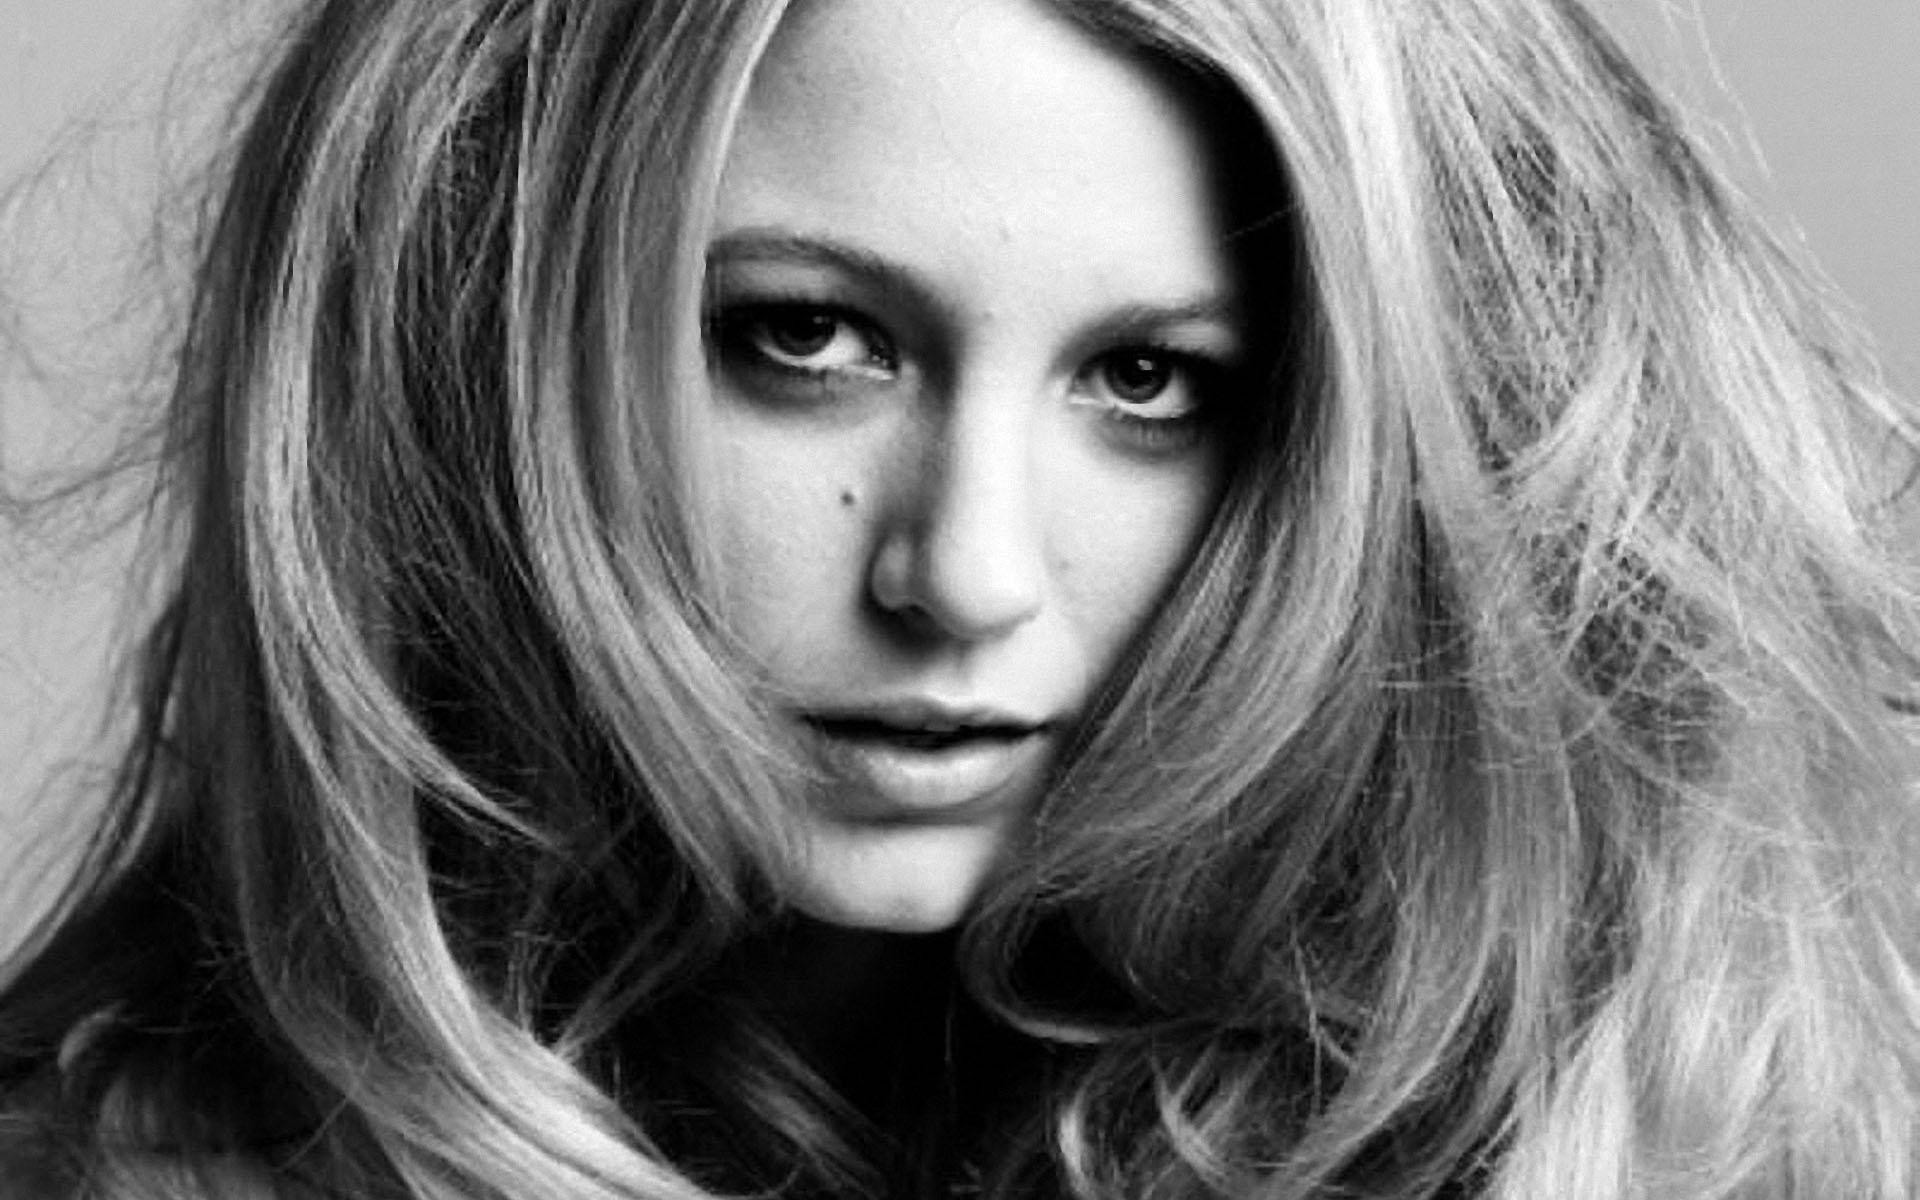 1920x1200 Blake Lively Black&White Close-up wallpapers and stock photos